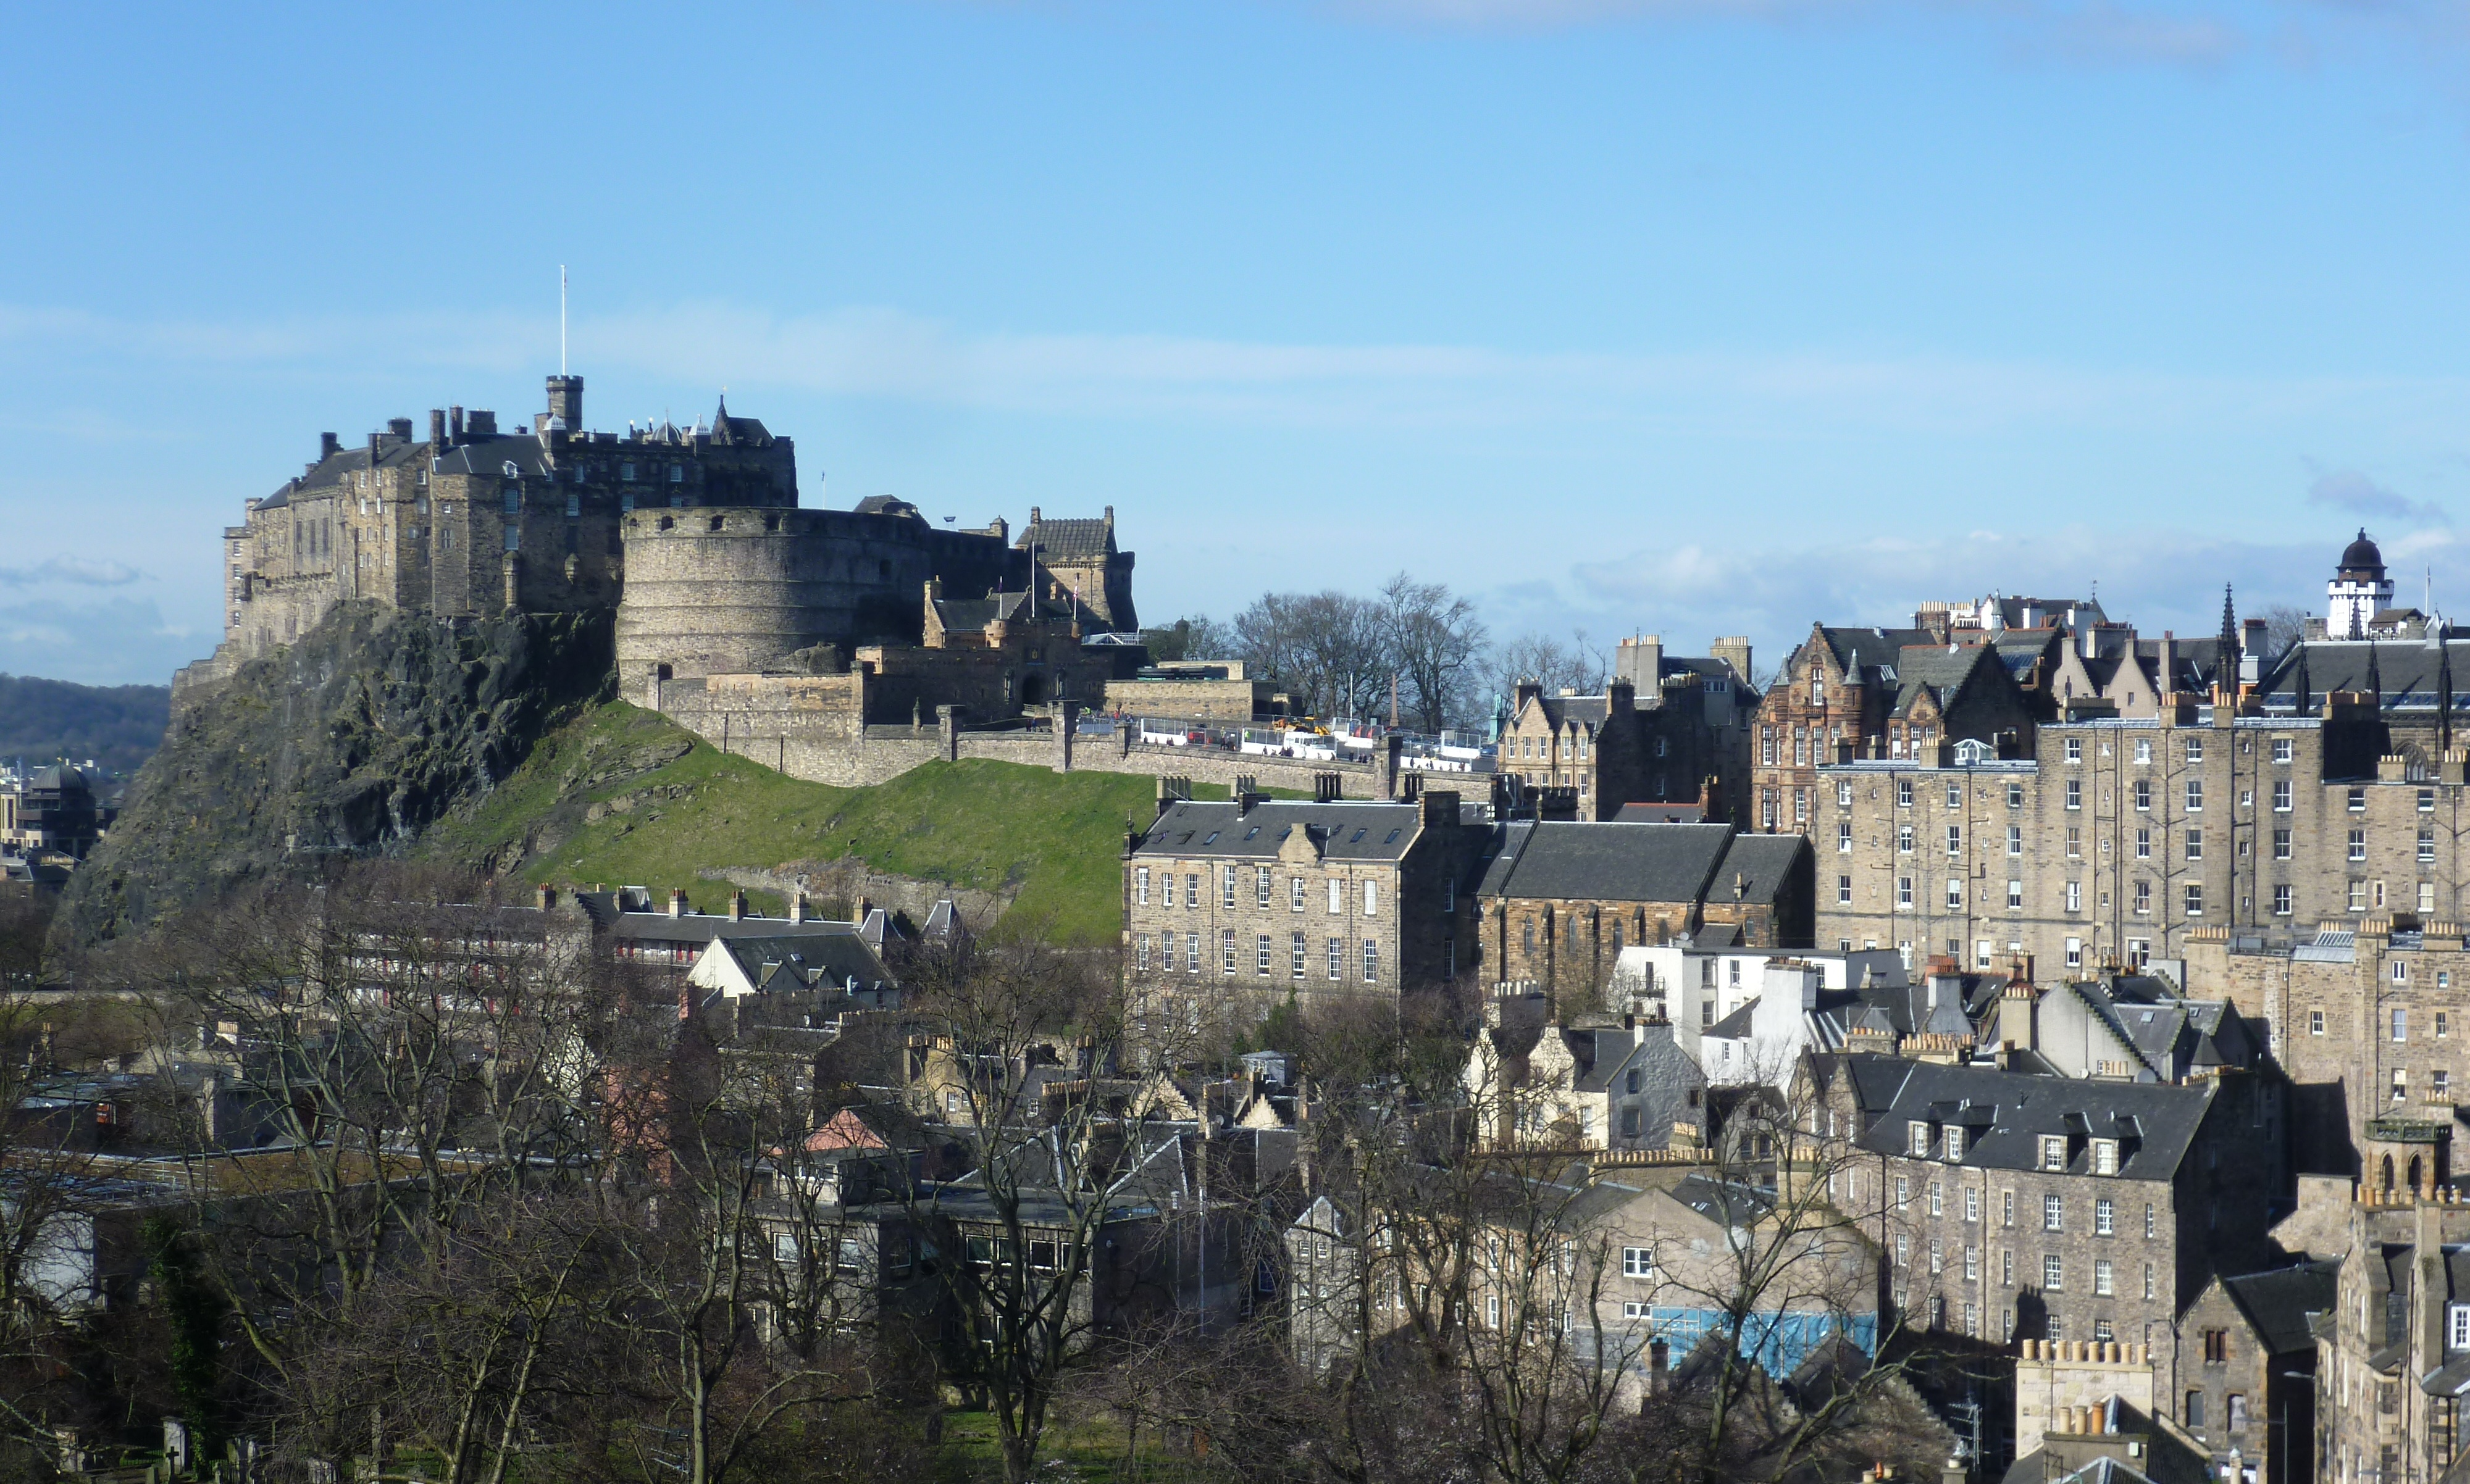 http://upload.wikimedia.org/wikipedia/commons/c/c1/Edinburgh_Castle_from_the_south_east.JPG